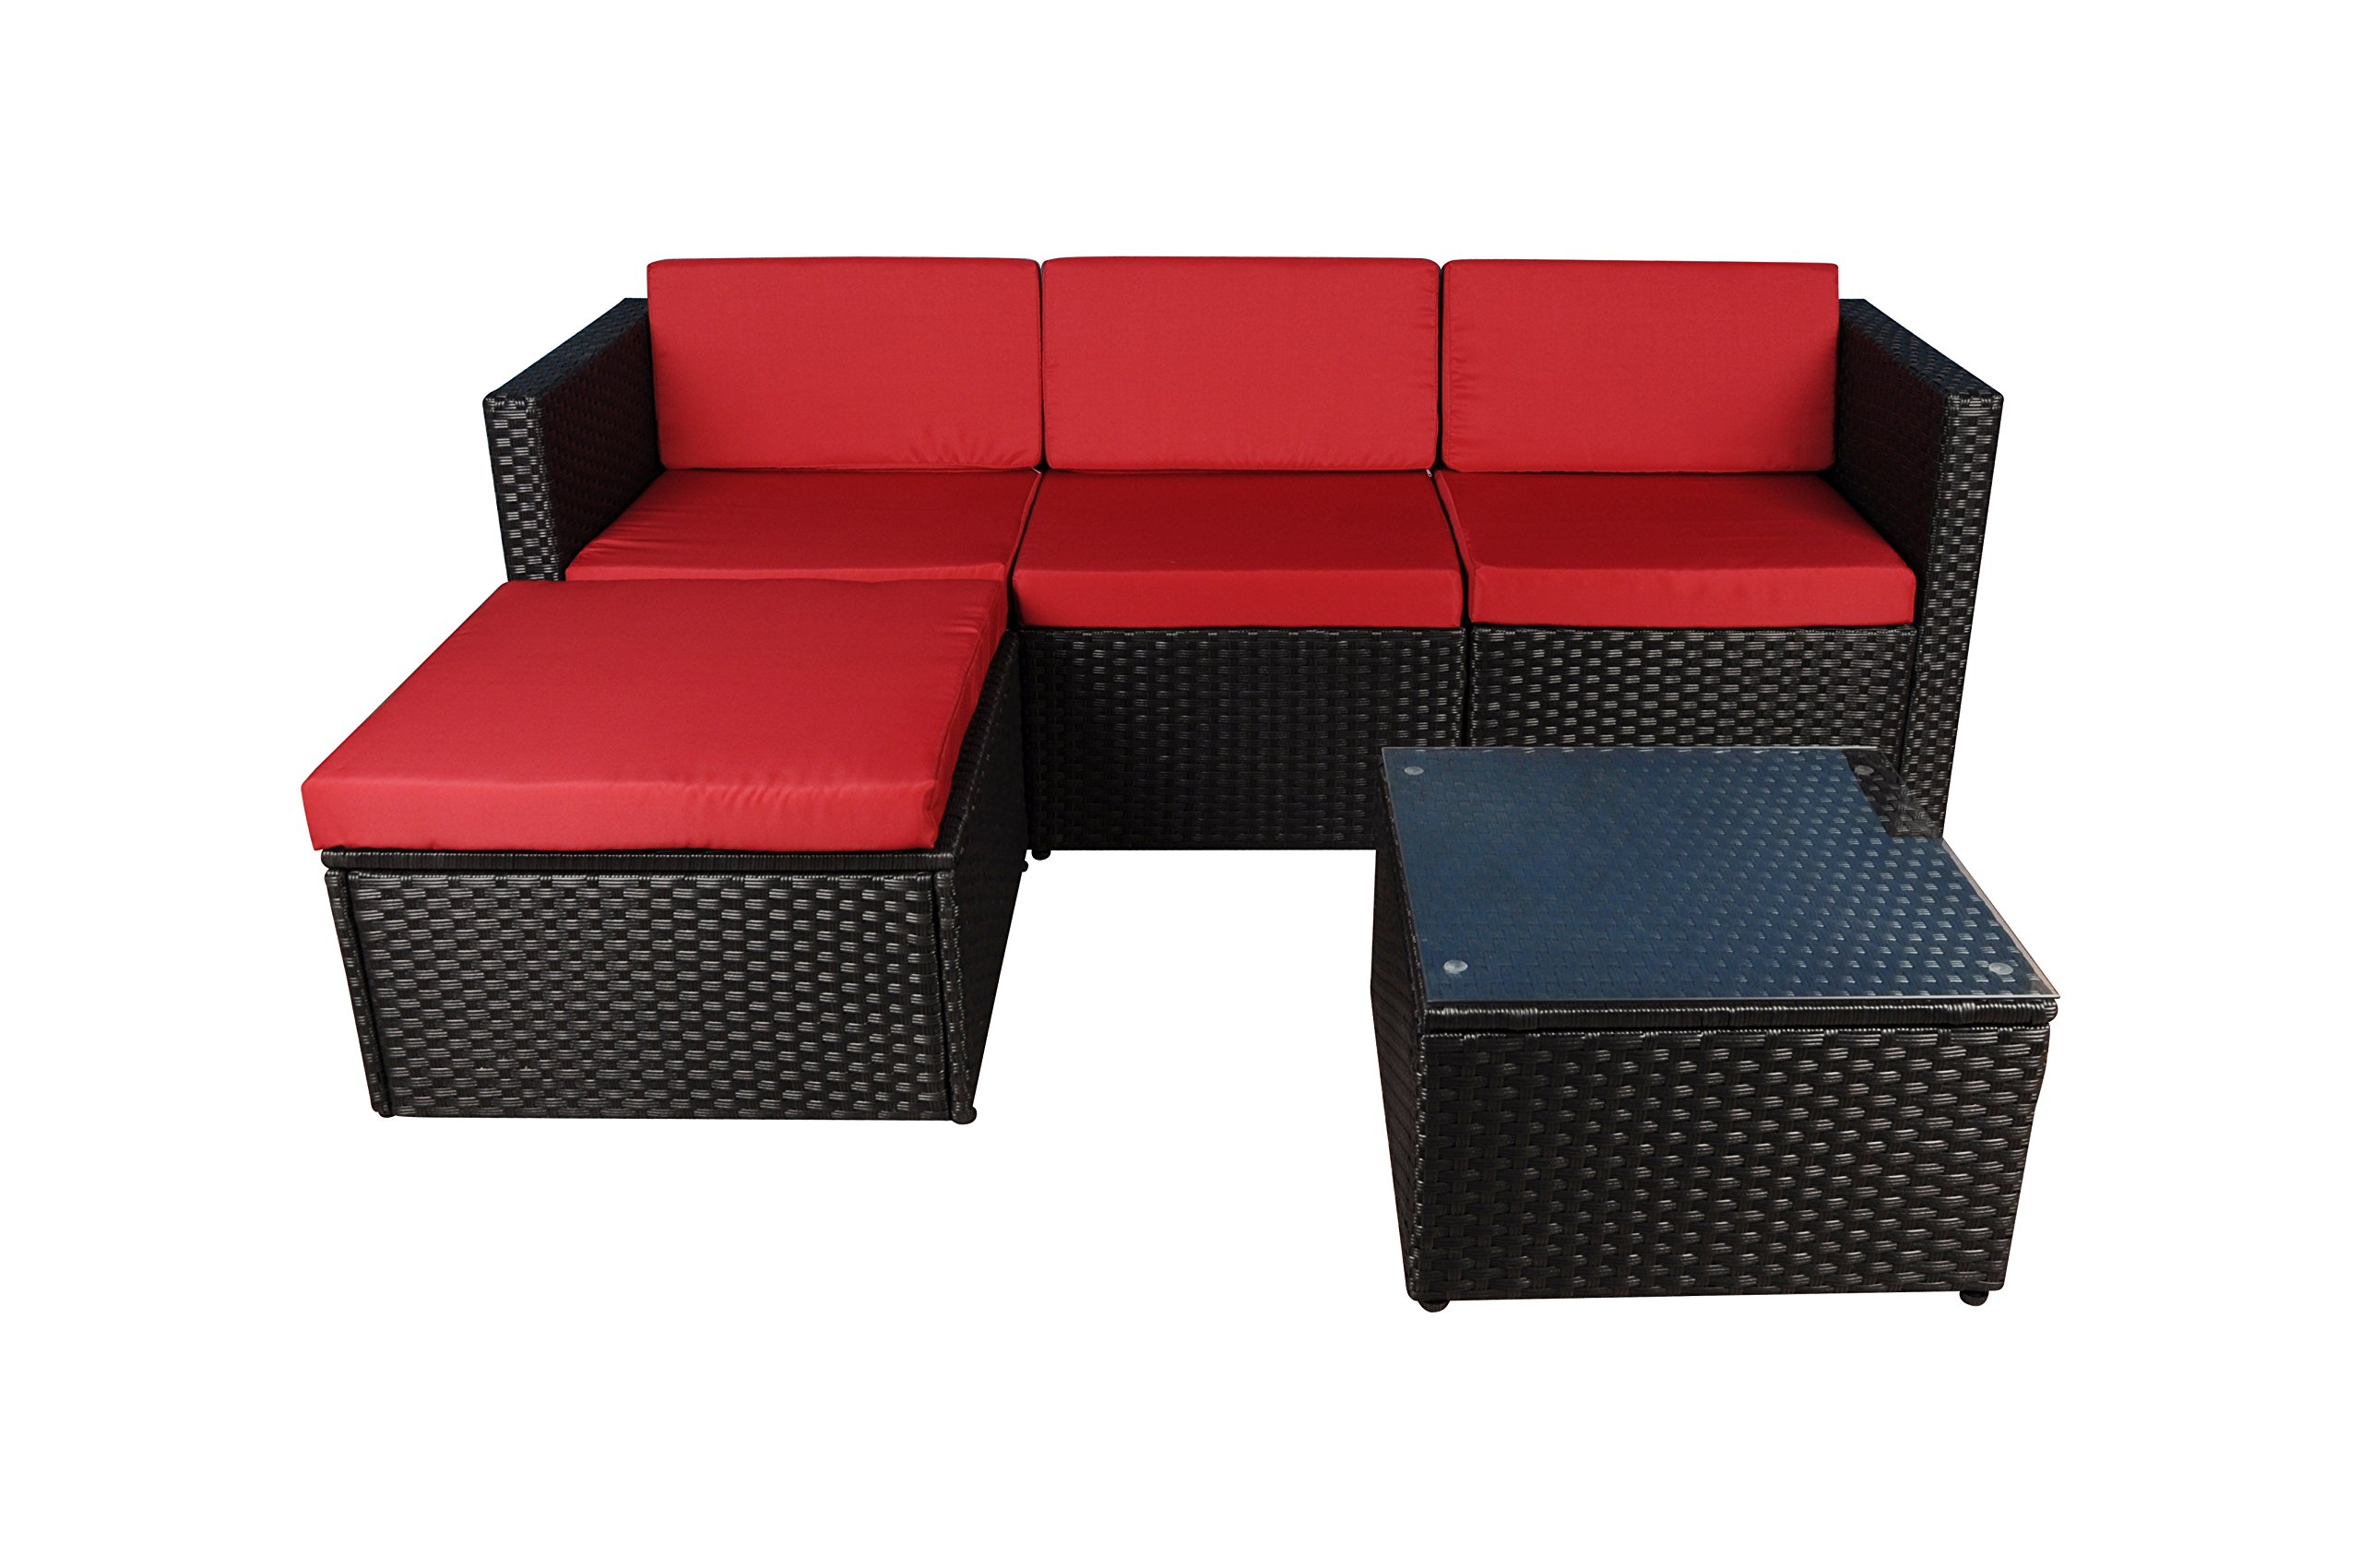 Modern Outdoor Garden, Sectional Sofa Set with Coffee Table - Wicker Sofa Furniture Set (Black / Red)